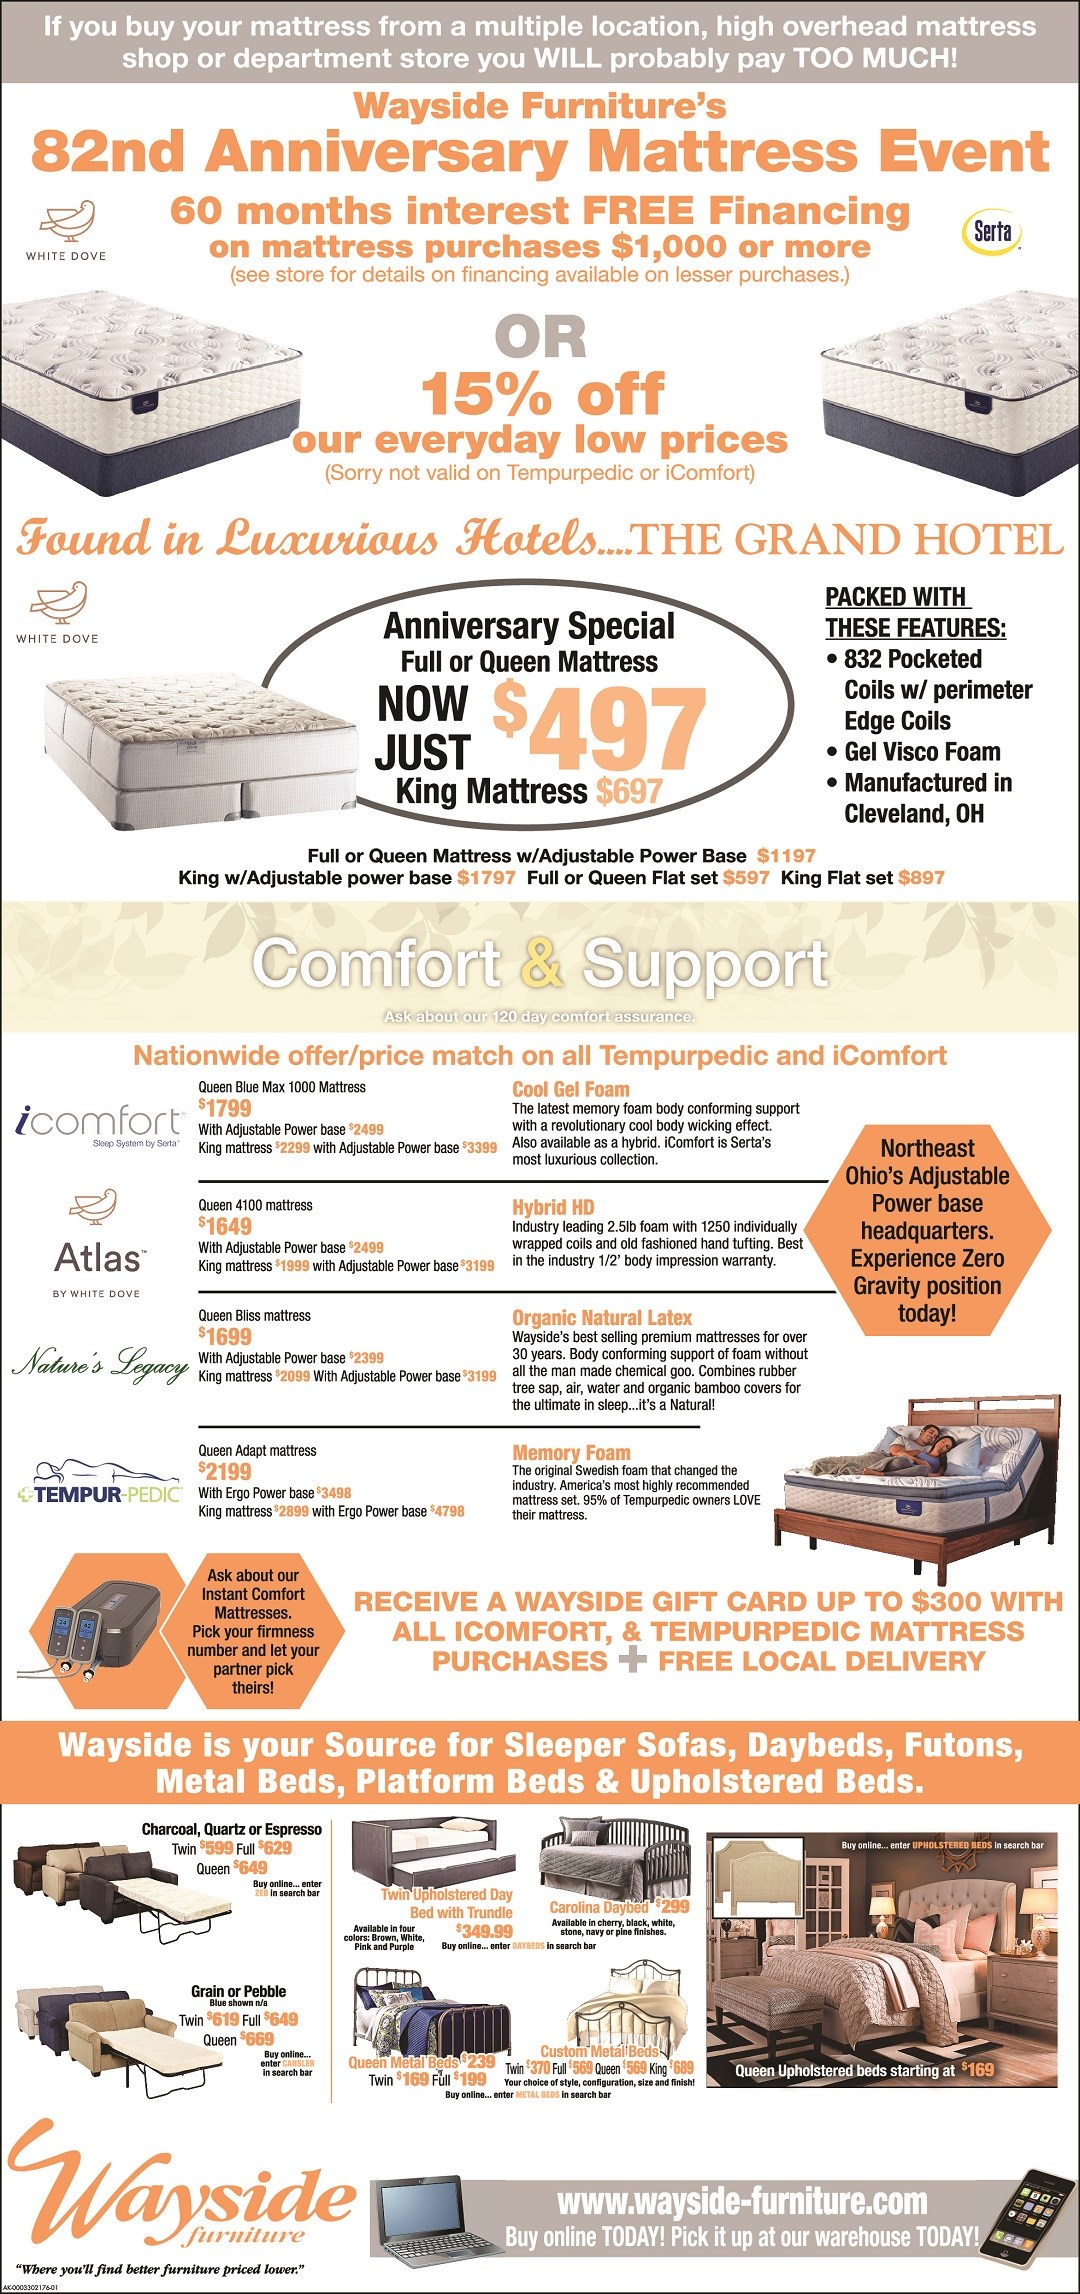 mattress sale, Serta, White Dove, Grand Hotel,iComfort, Tempurpedic, Atlas, Nature's Legacy, daybeds, metal beds, iron beds, upholstered beds, sleeper sofa